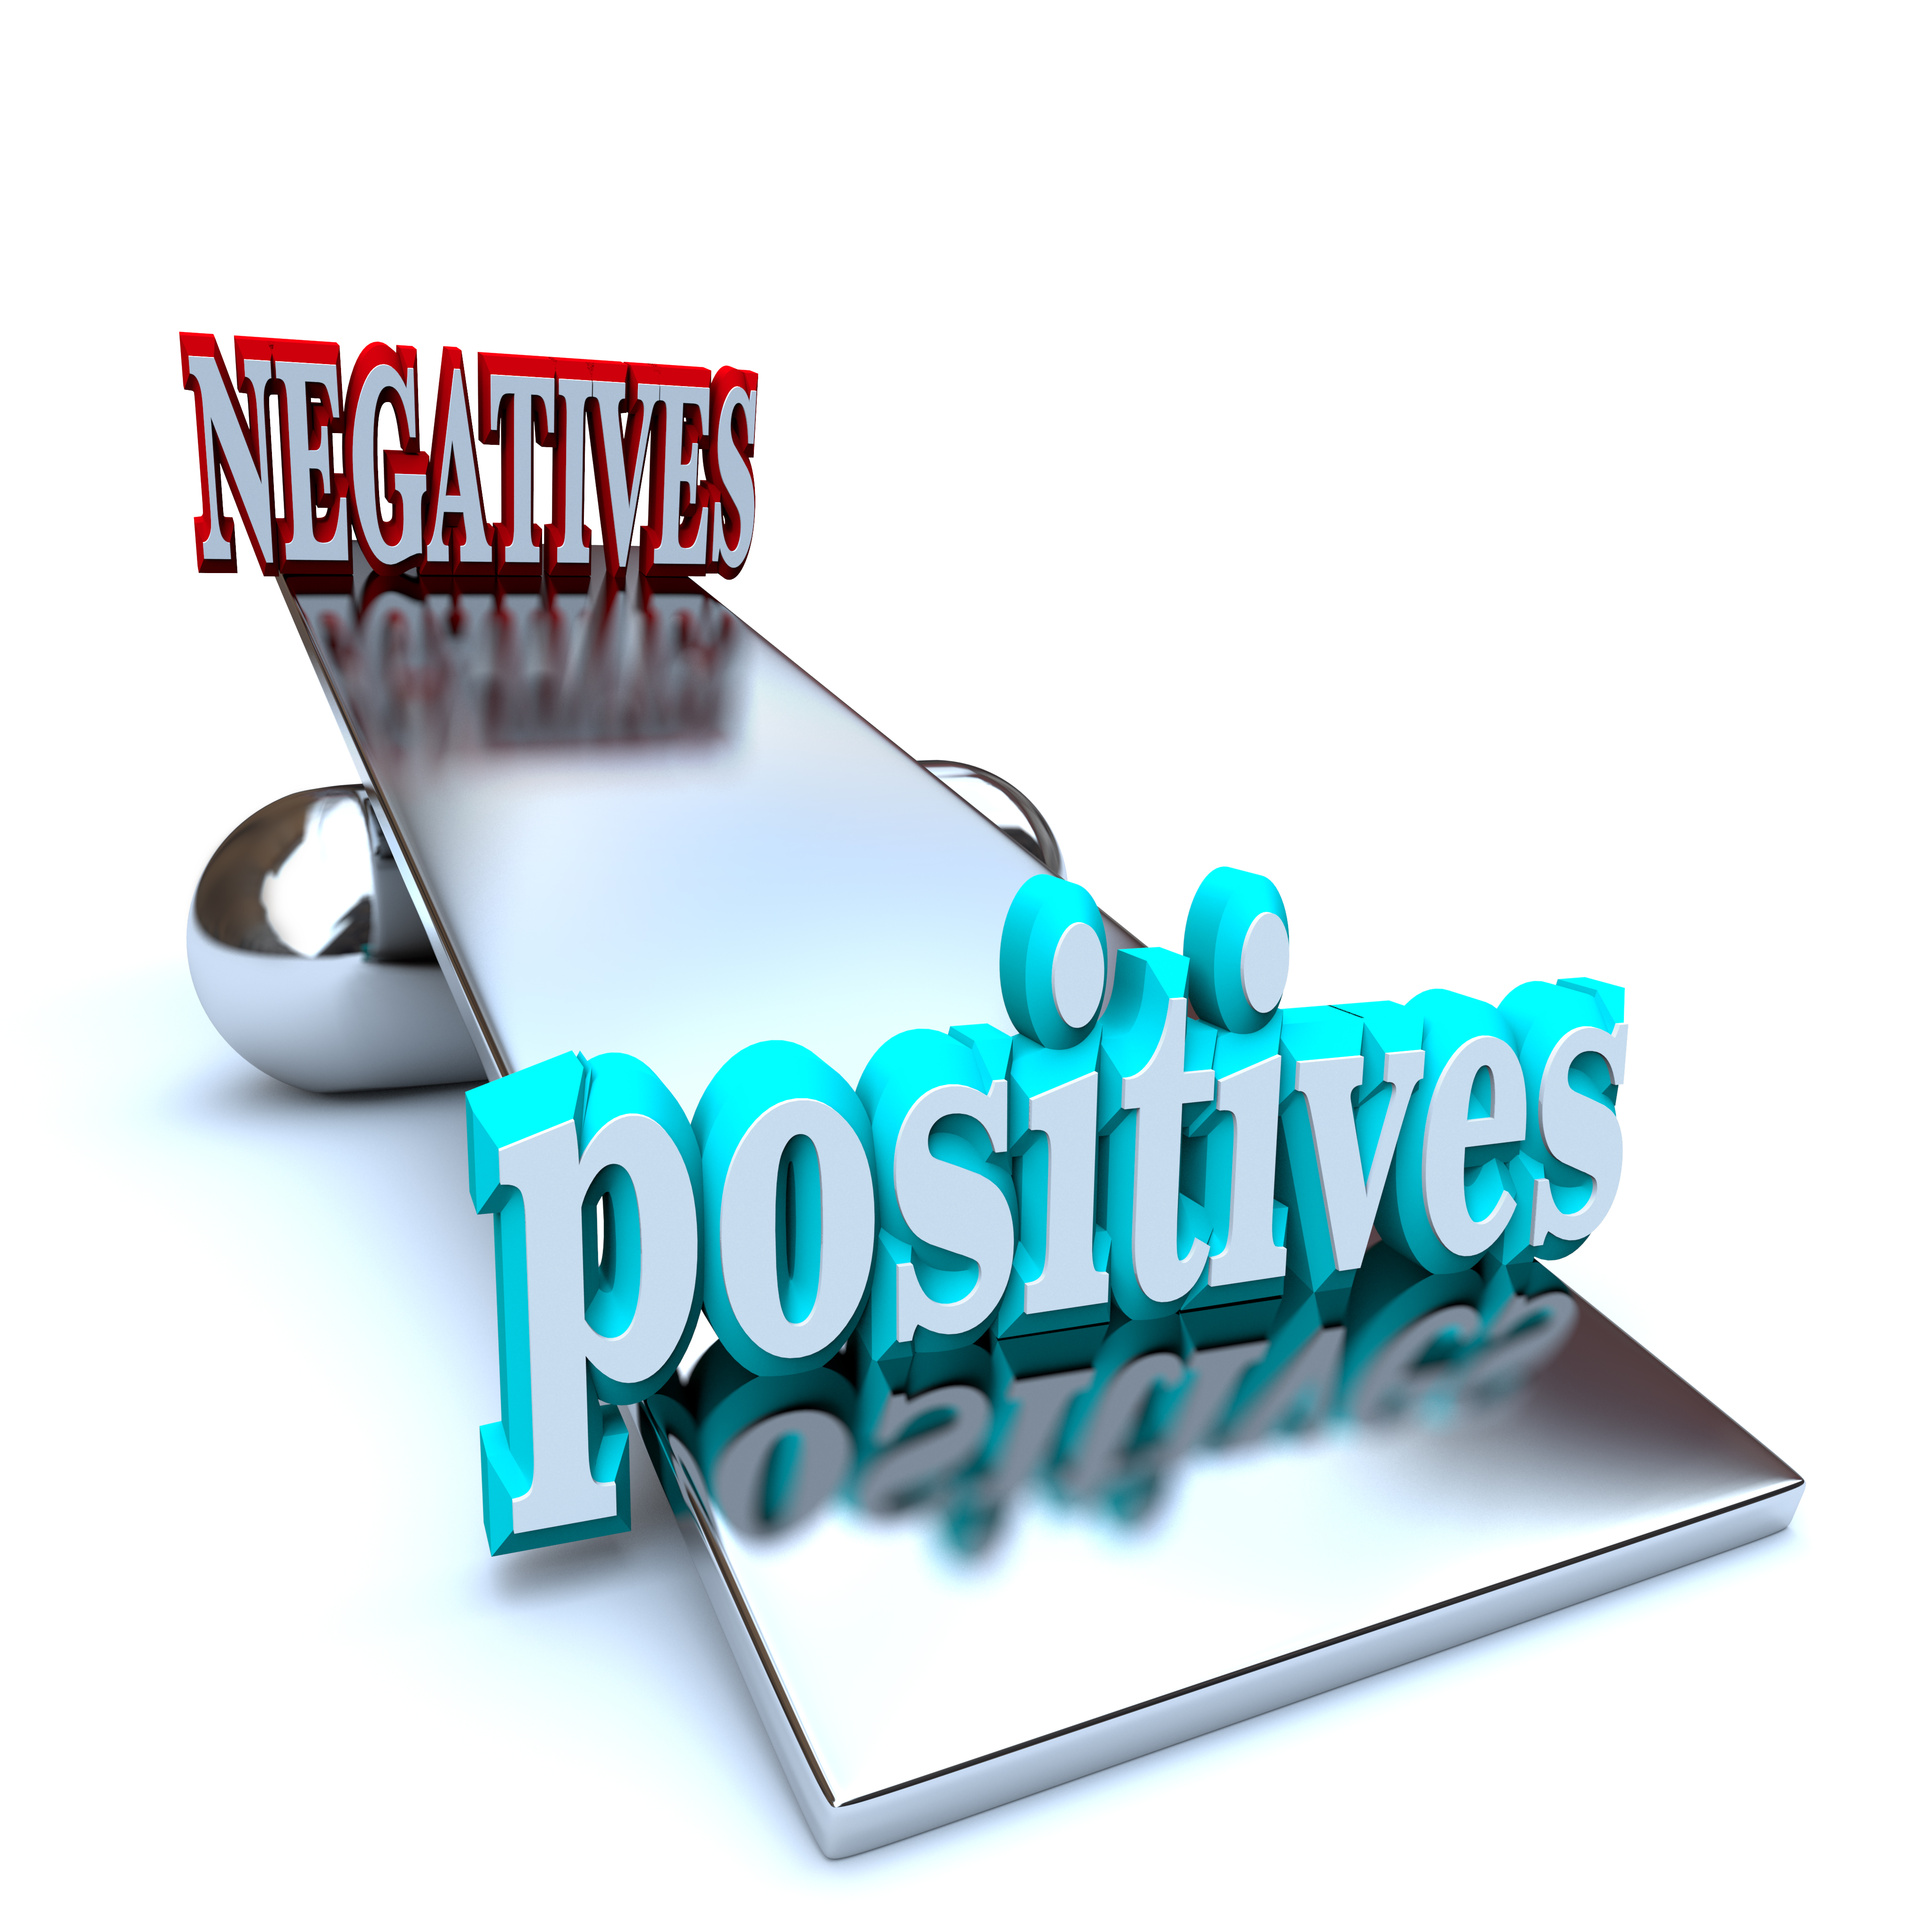 Weighing the Positives vs Negatives